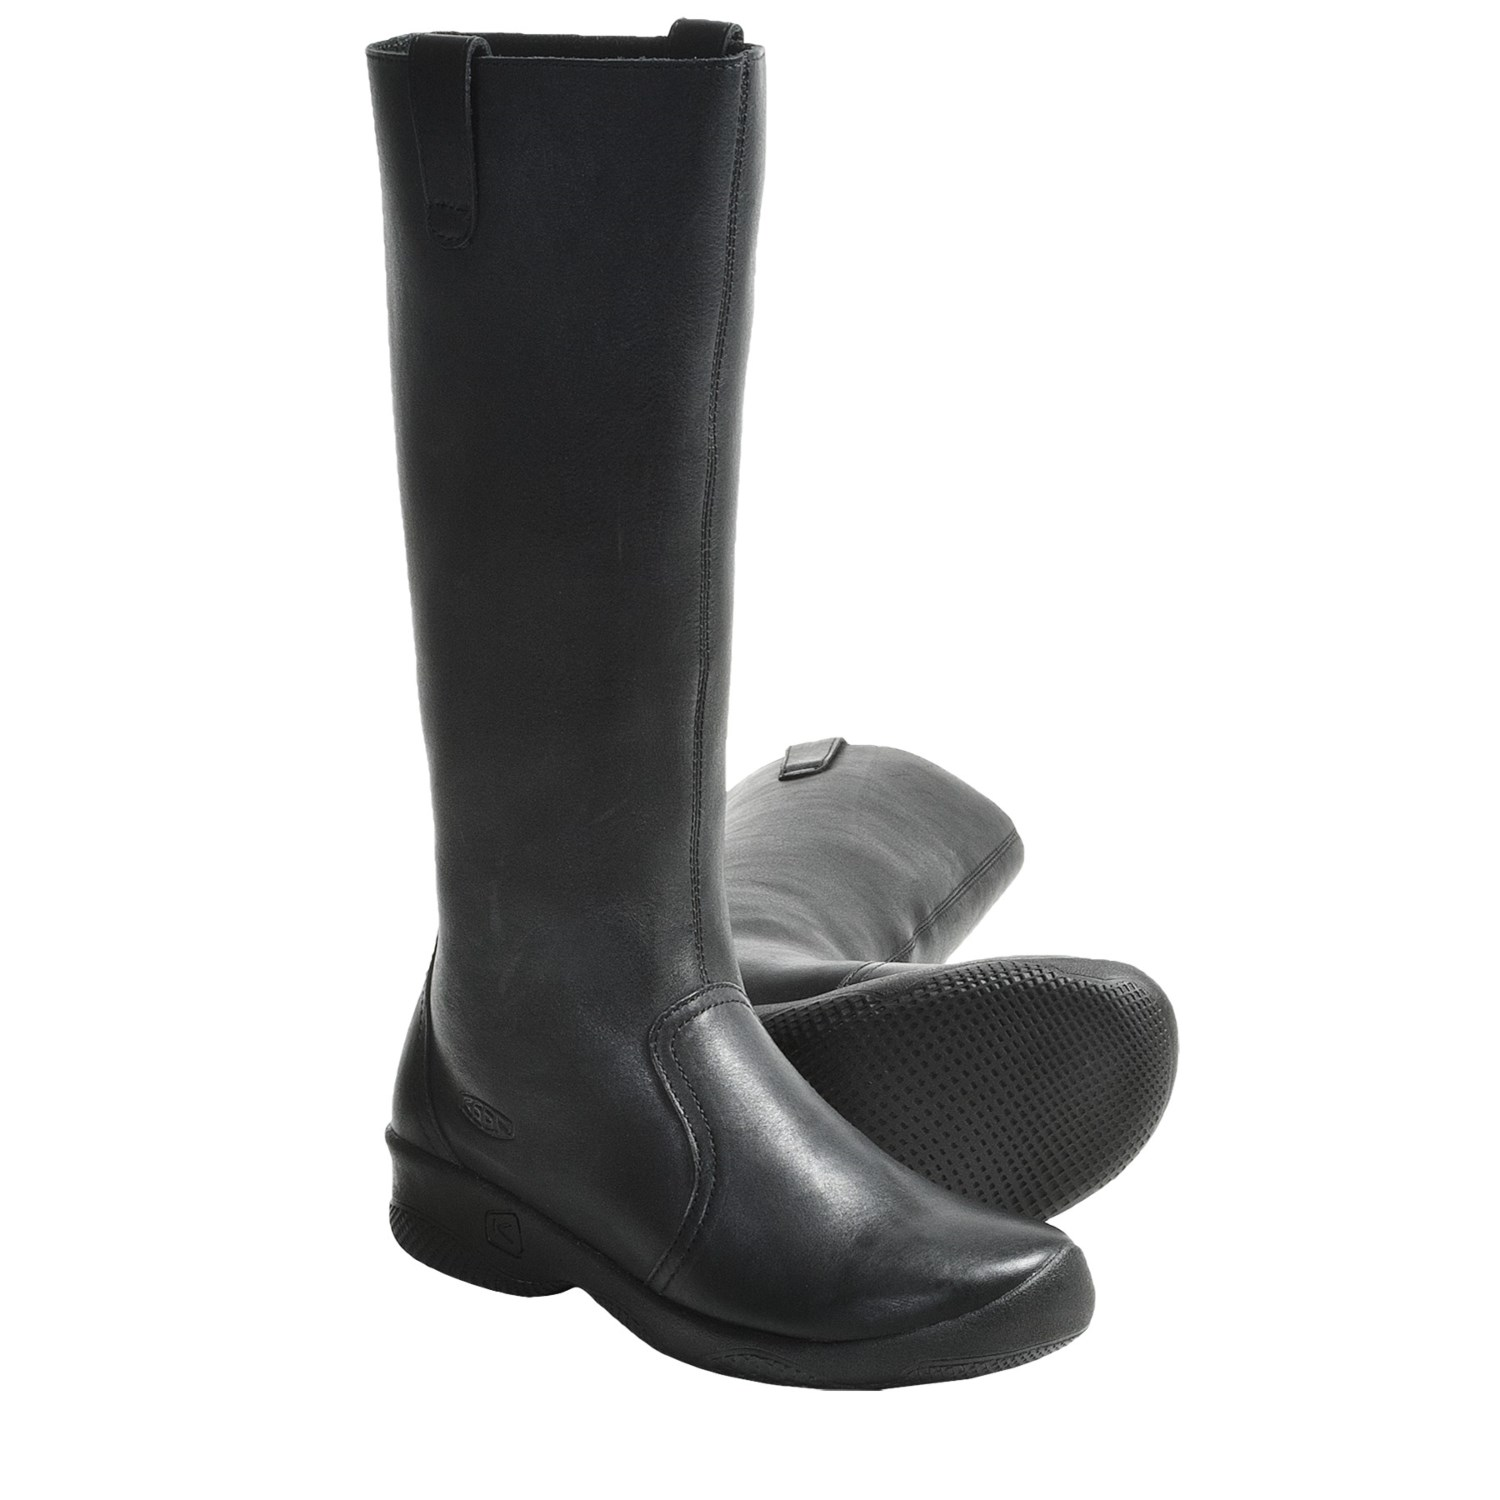 boots for dec 30 2012 10 05 29 picture gallery